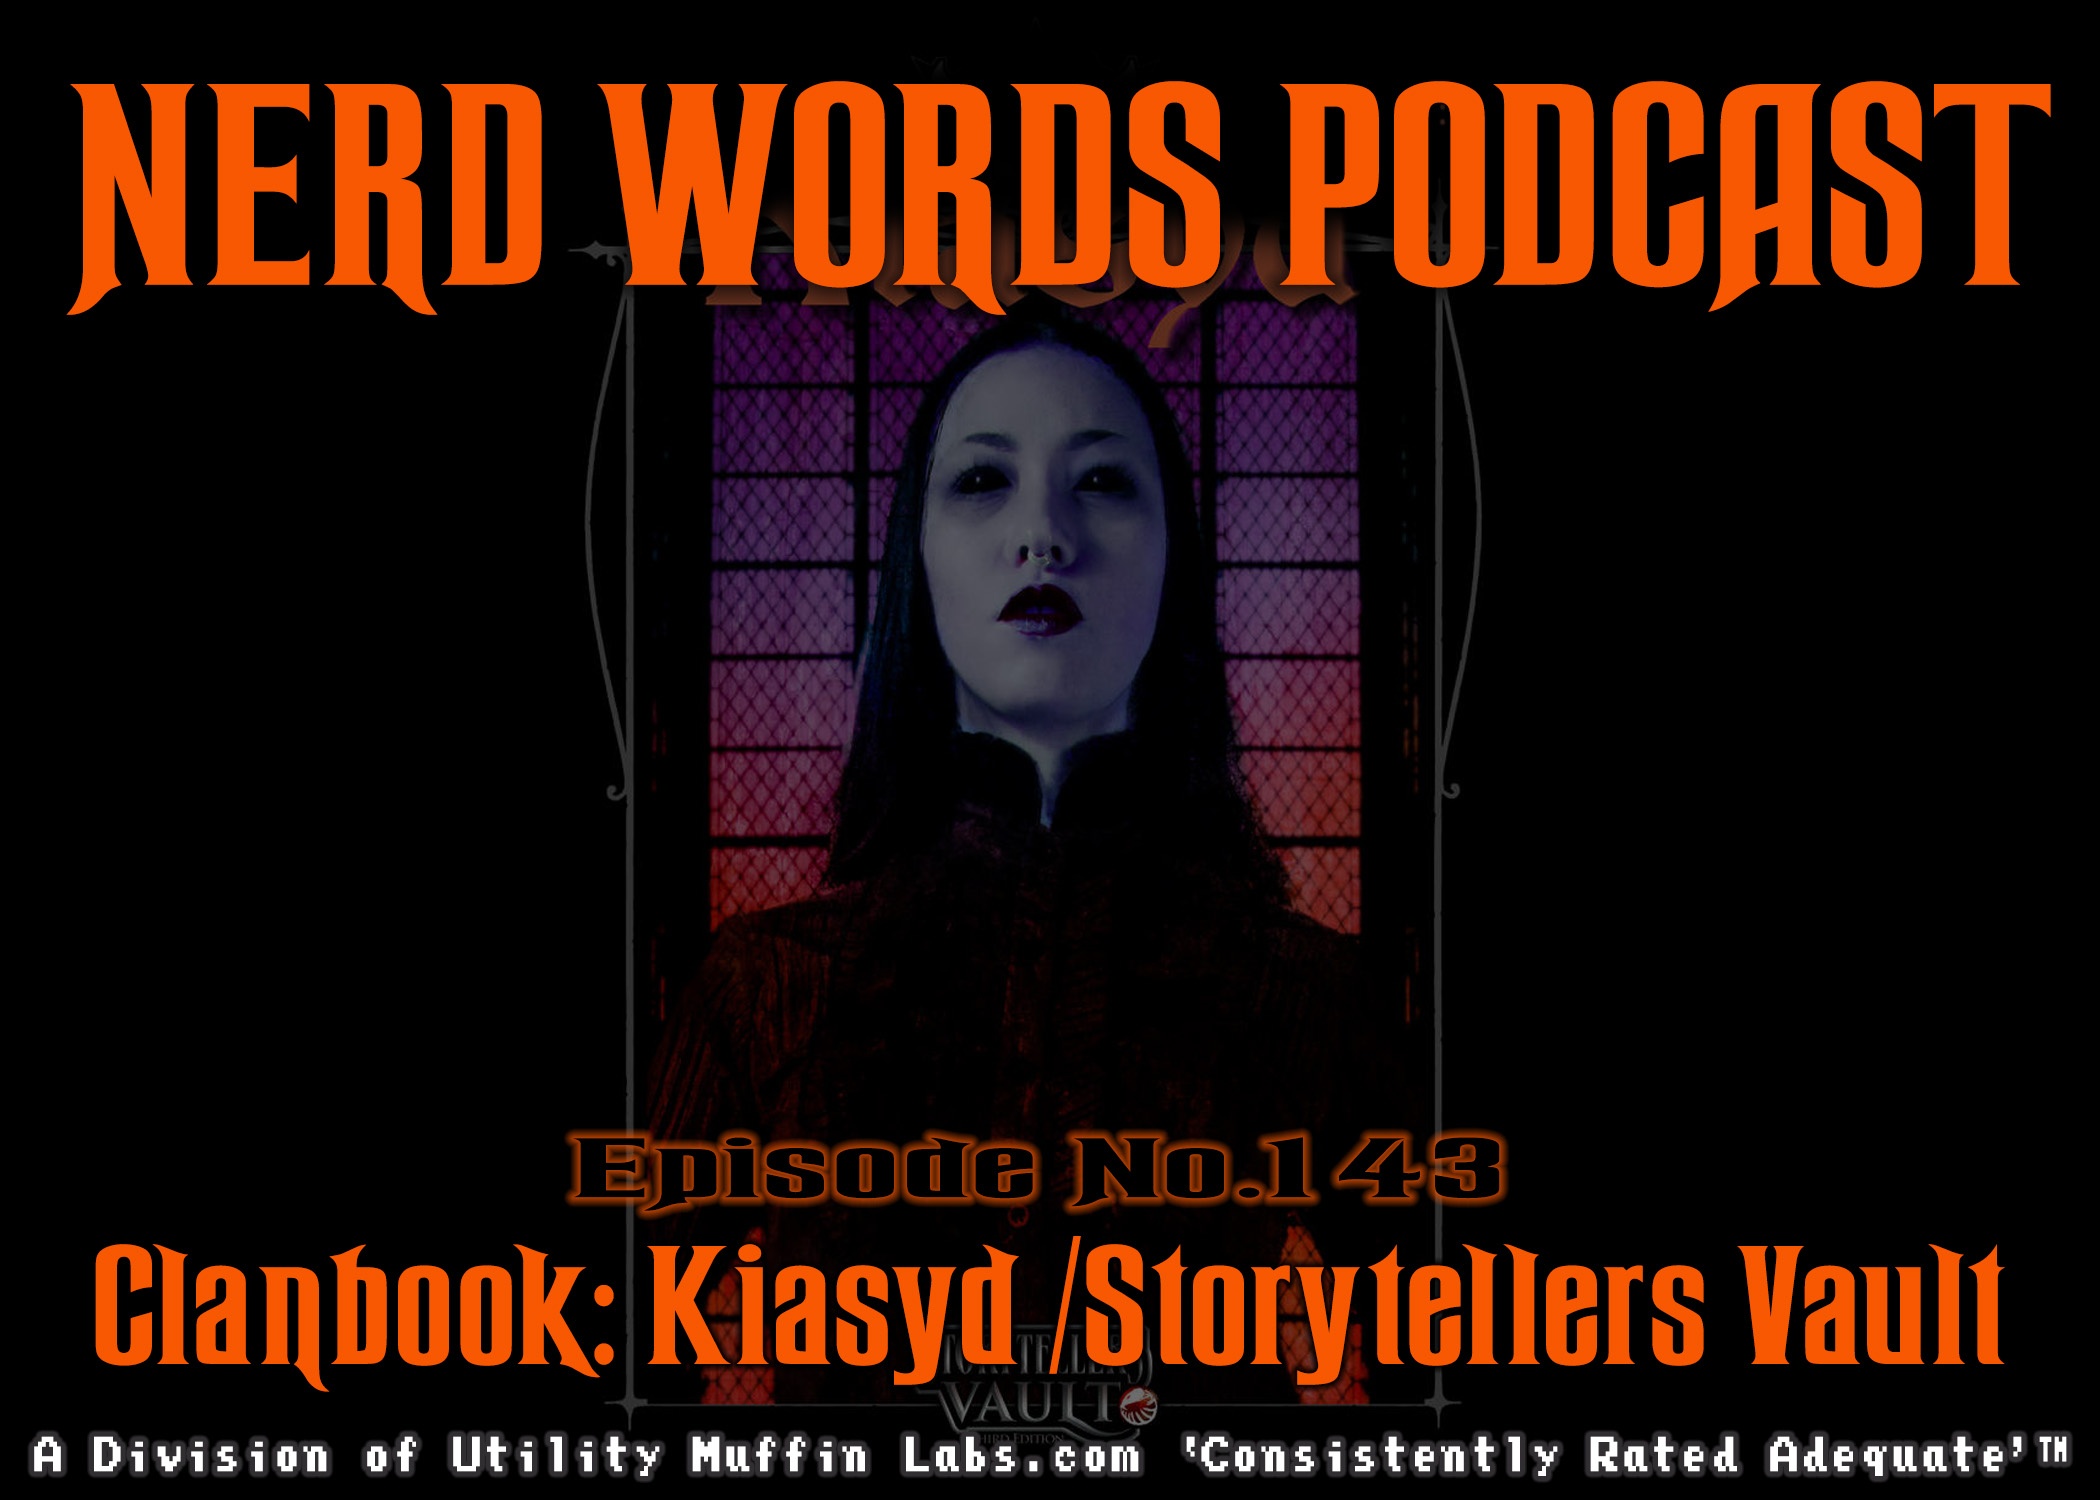 Nerd Words Podcast 143.jpg